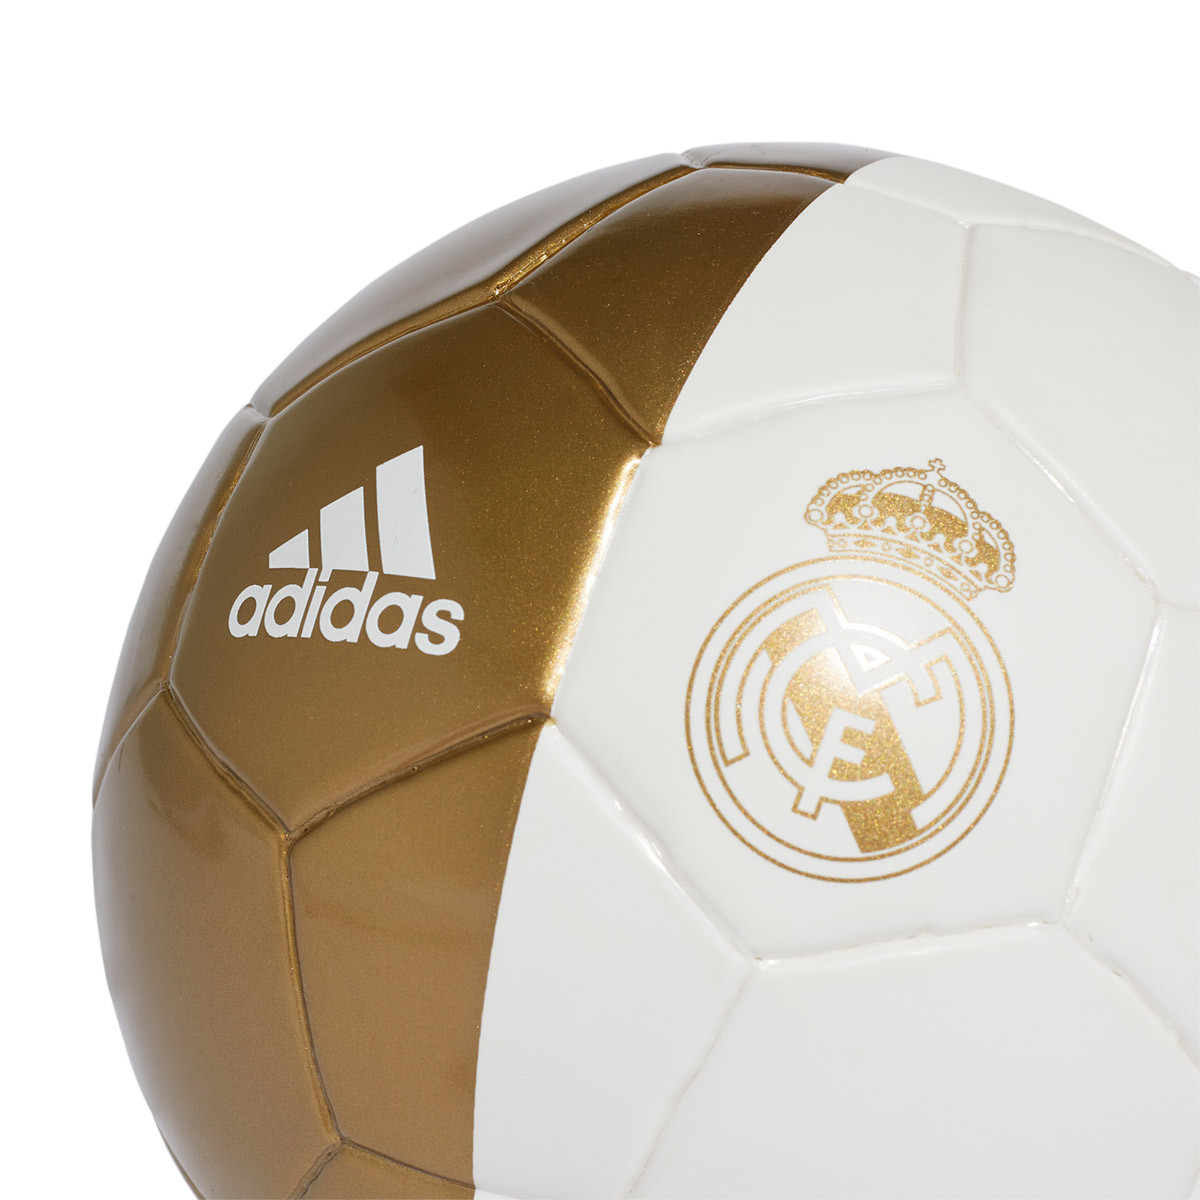 Pallone adidas Mini Real Madrid 2019 2020